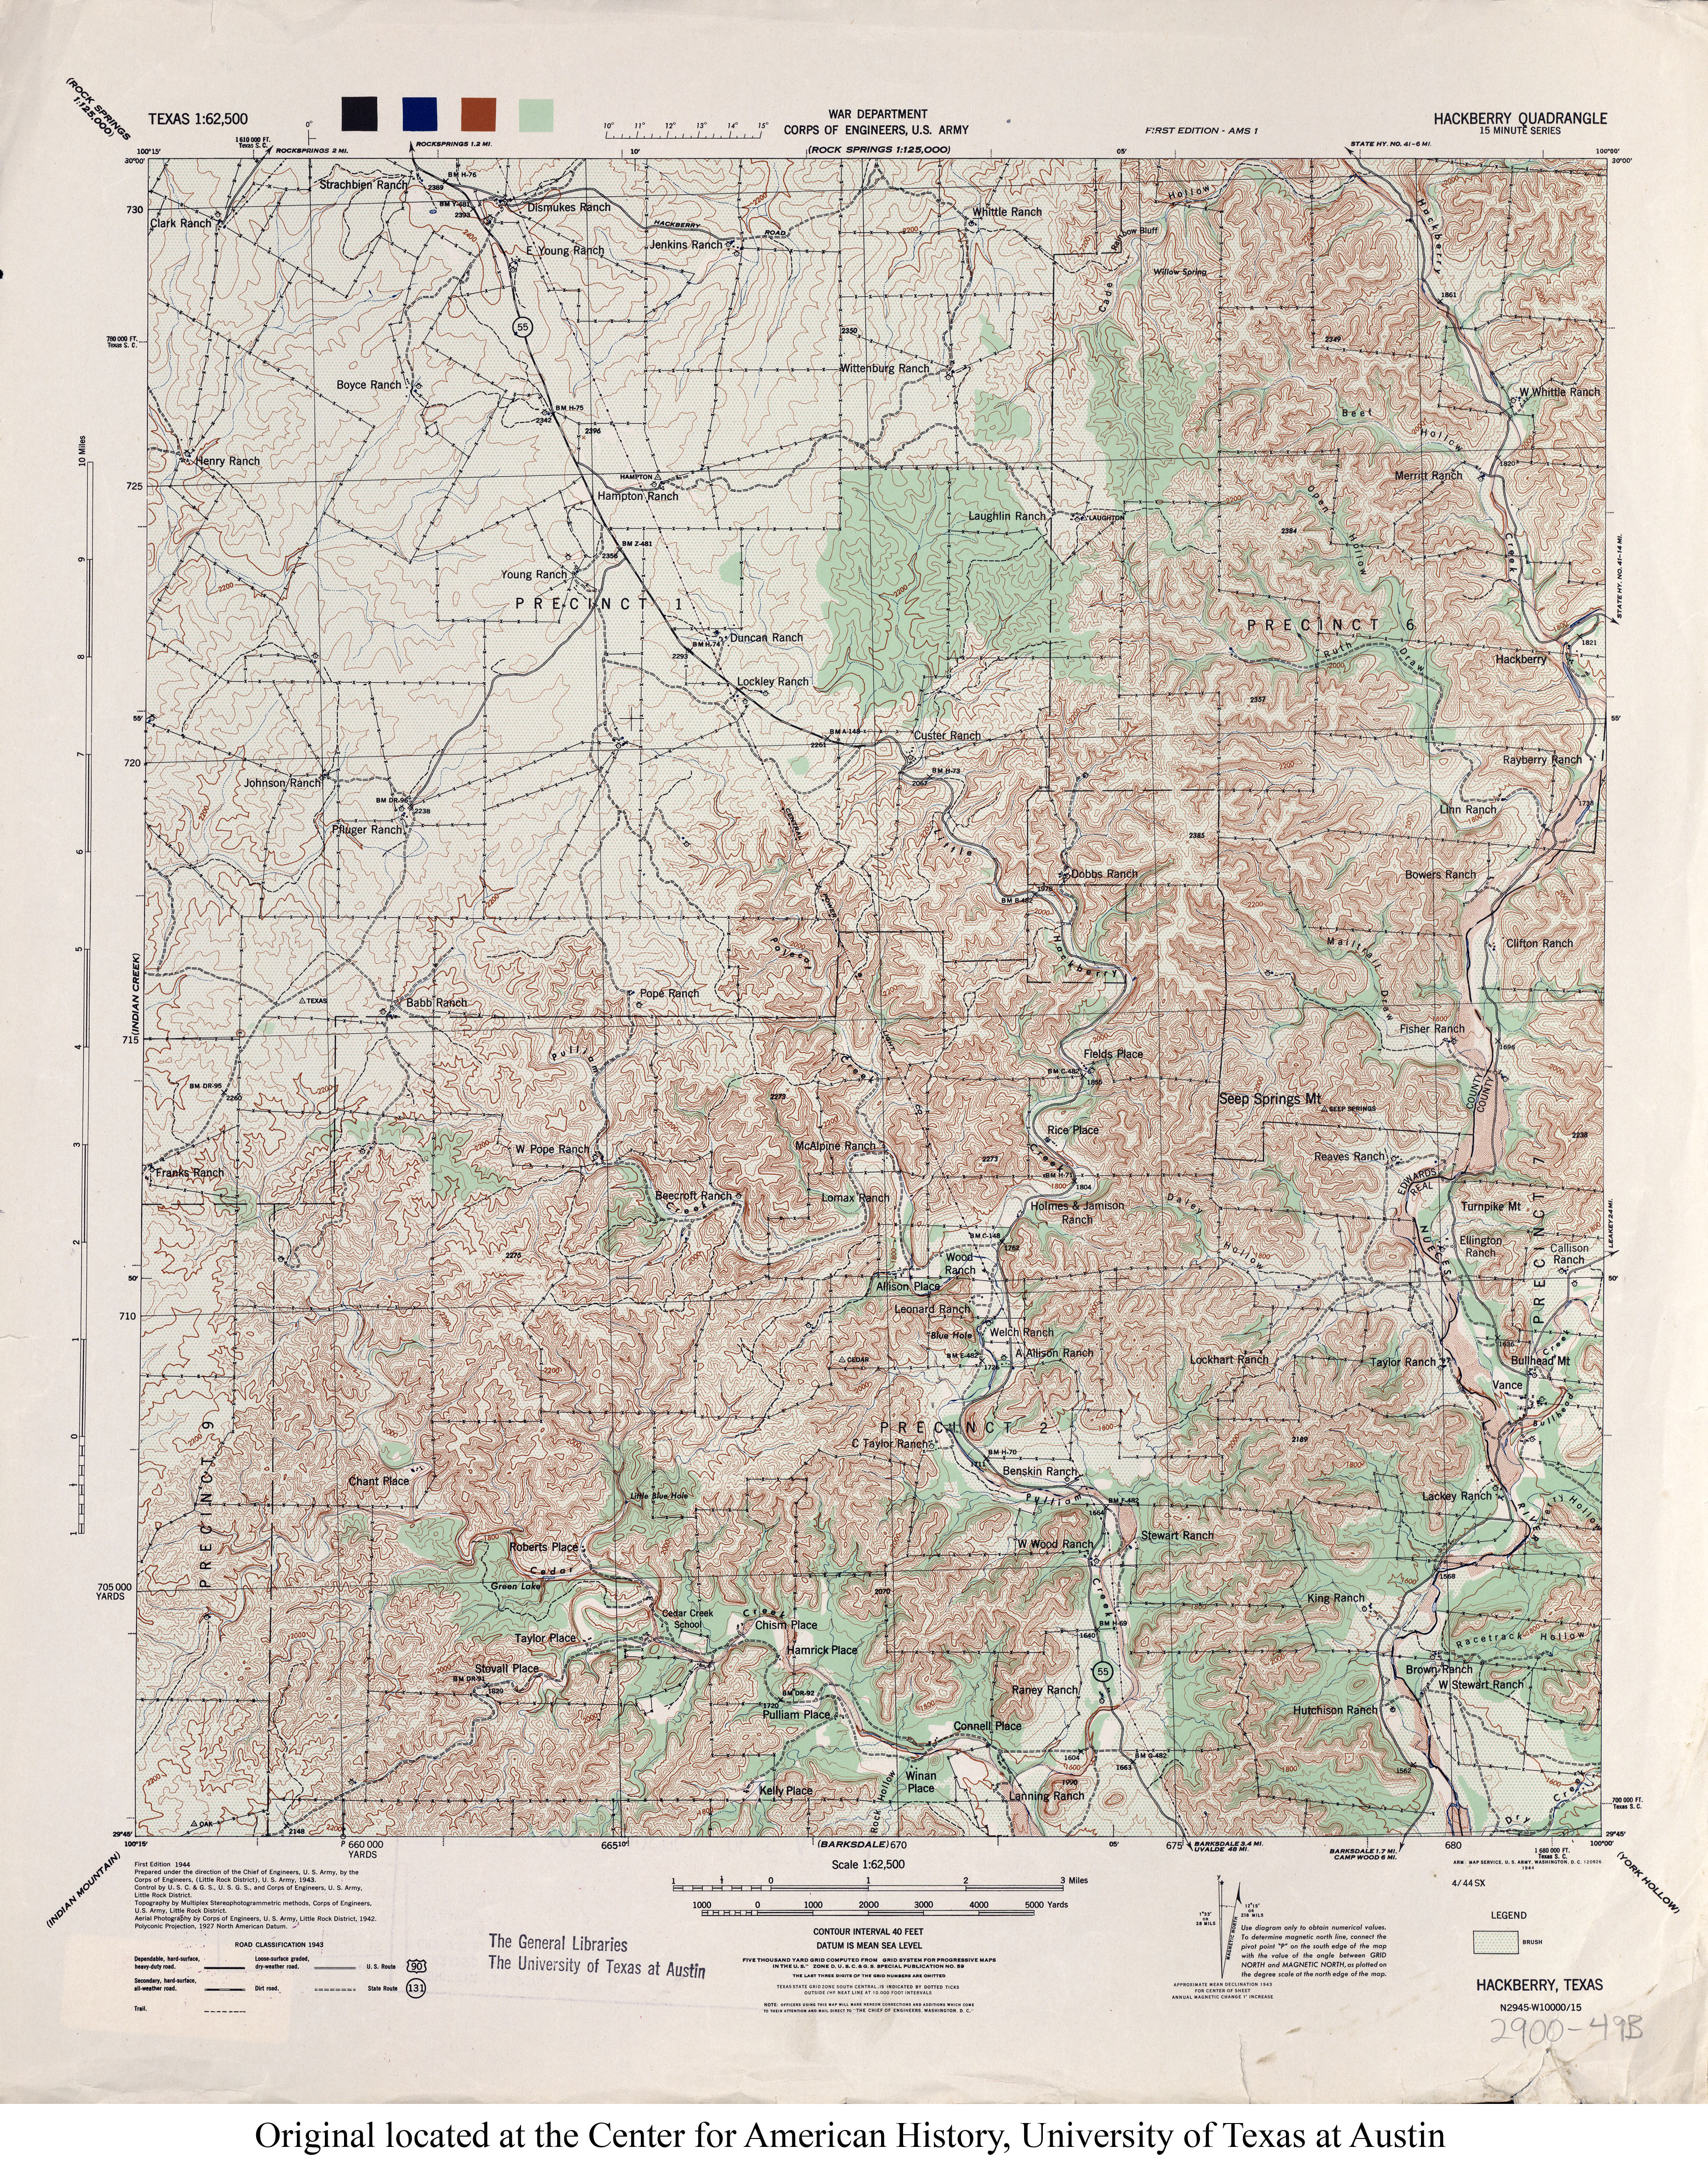 Texas Topographic Maps Perry Castaneda Map Collection Ut Library - Us-corps-of-engineers-maps